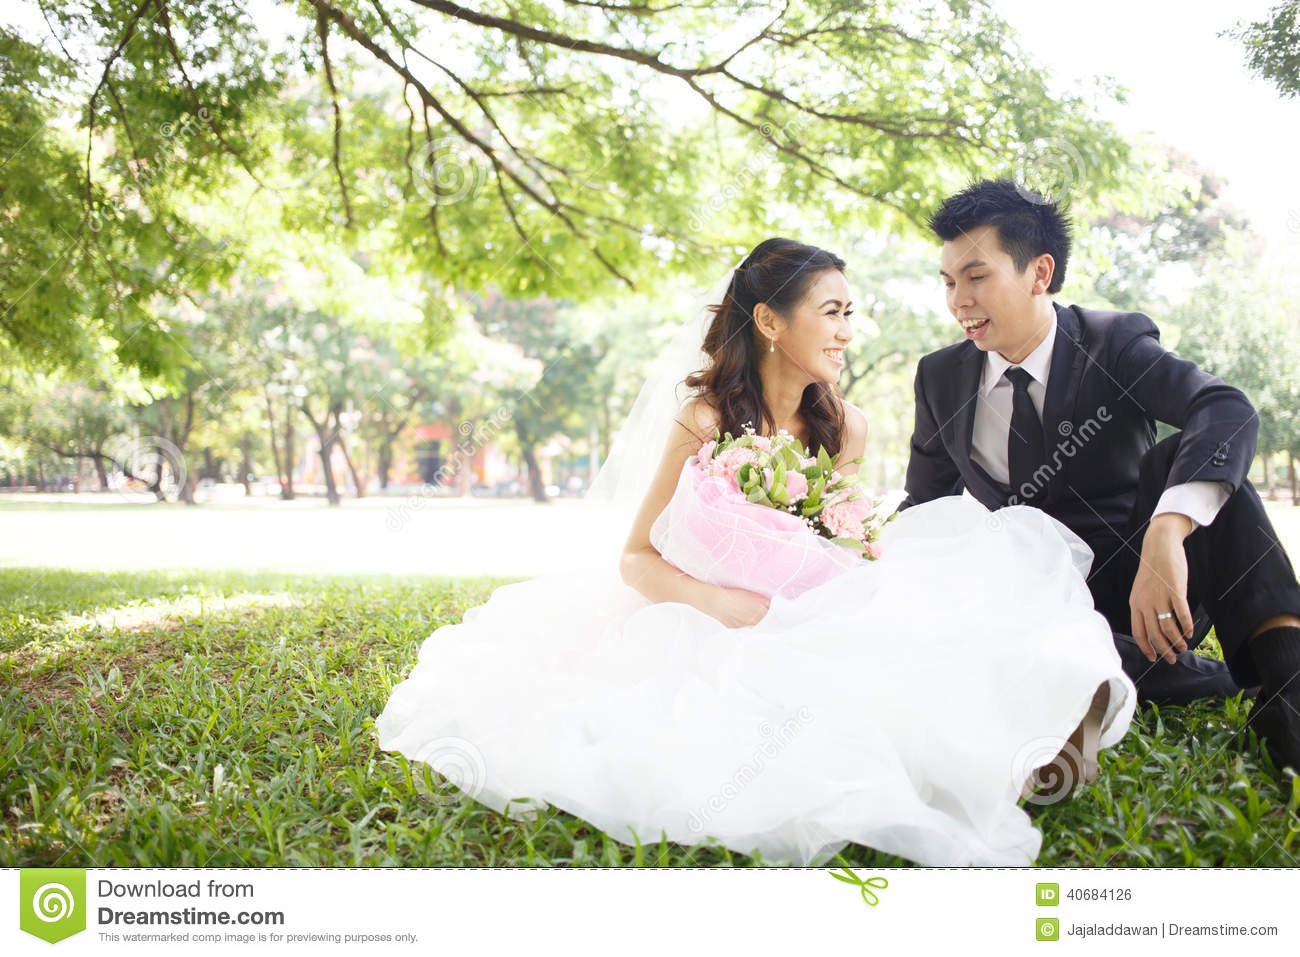 Happy Asian Couple In Wedding Dress In A Green Park Stock Photo - Image: 40684126